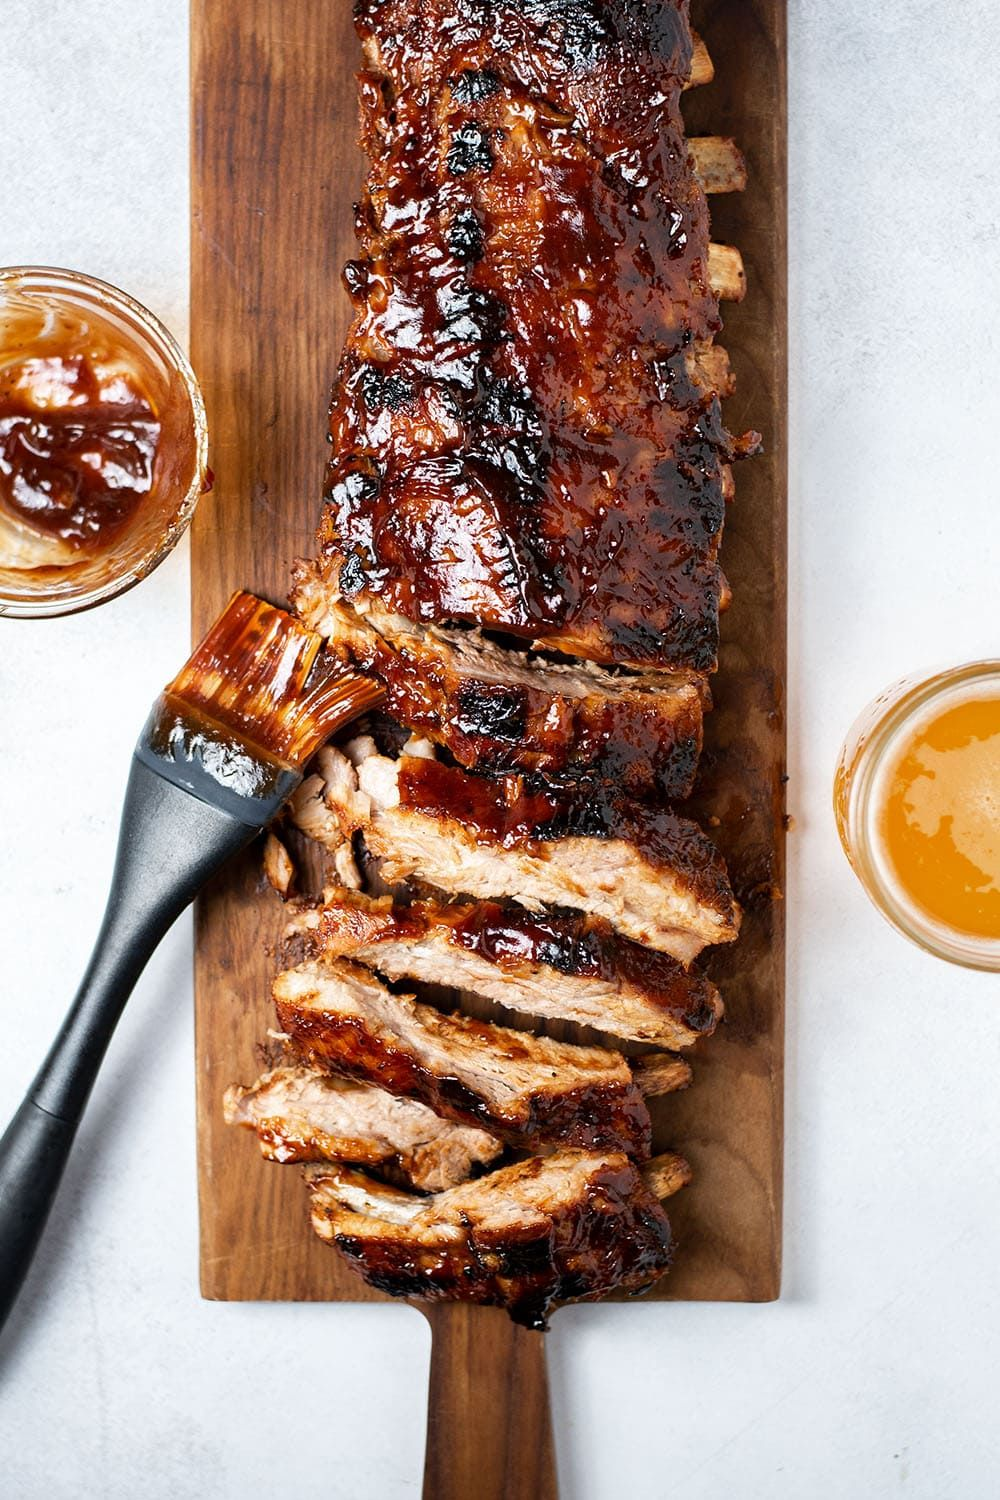 Oven Baked Bbq Ribs Recipe Baked Bbq Ribs Oven Baked Bbq Ribs Recipe Food